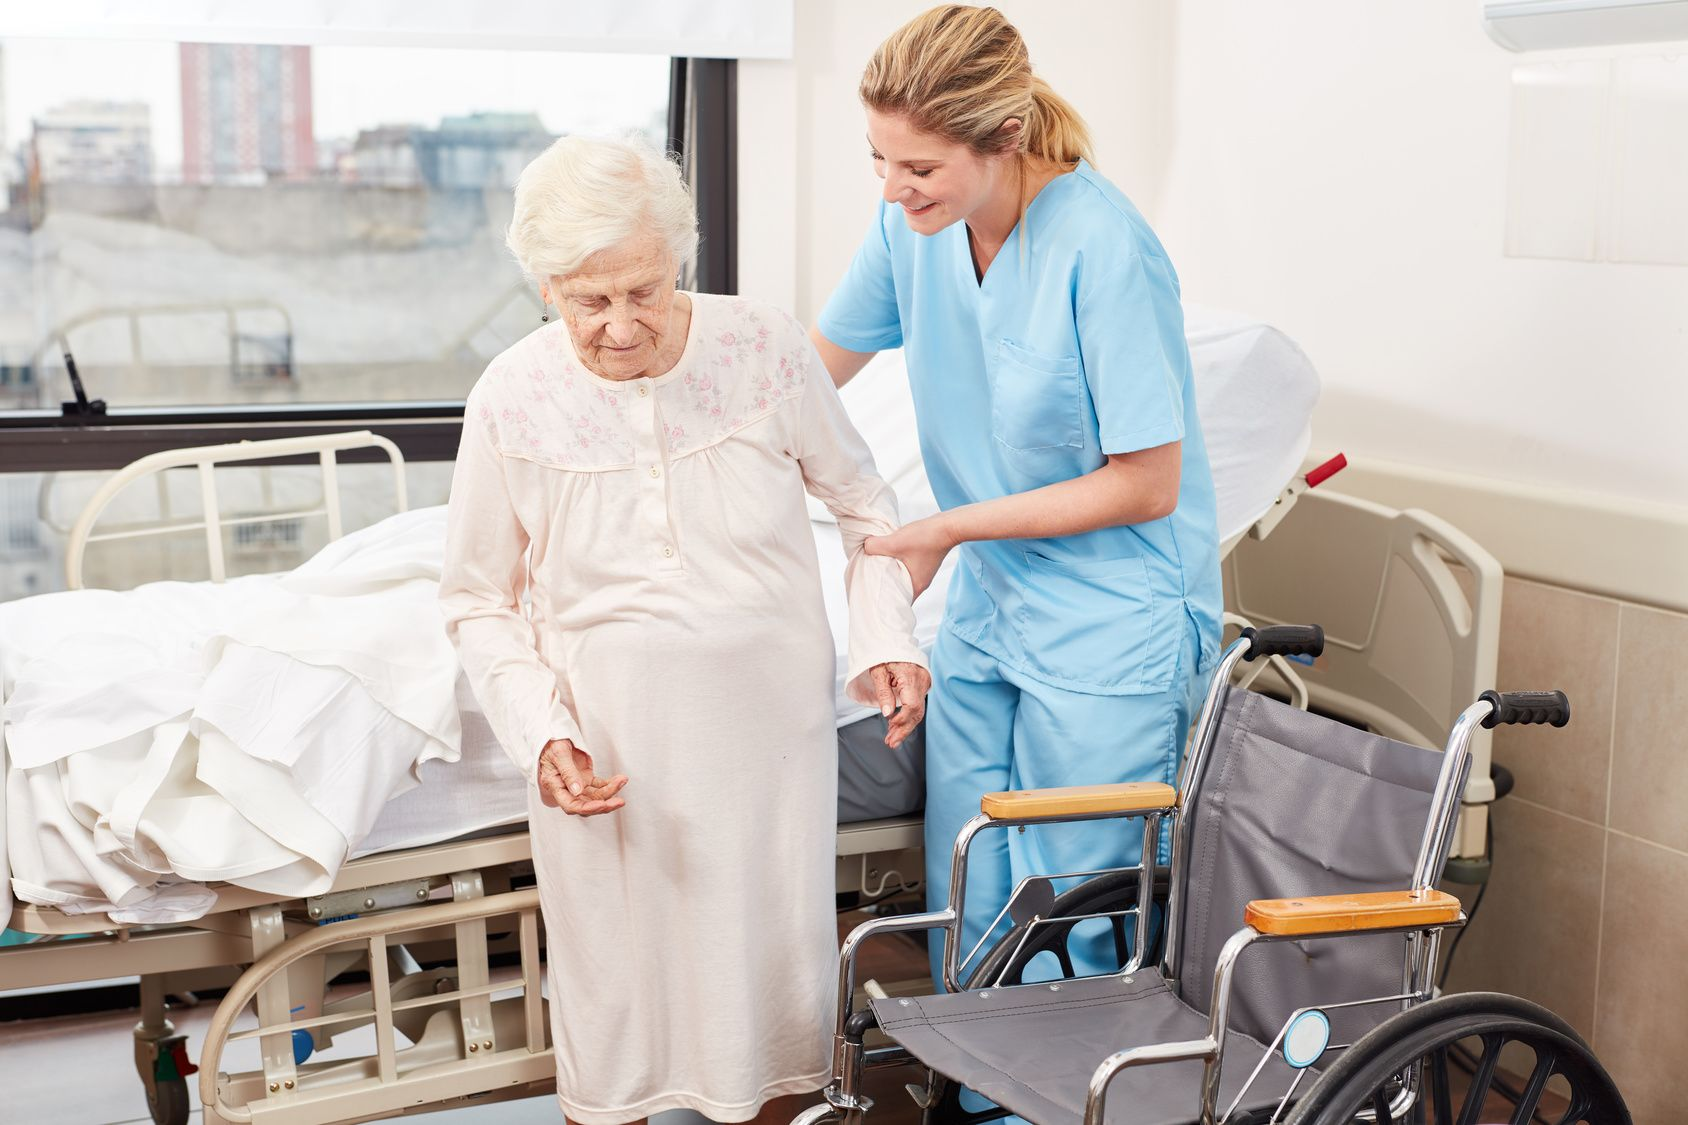 At Assisting Hands, we identify additional senior care